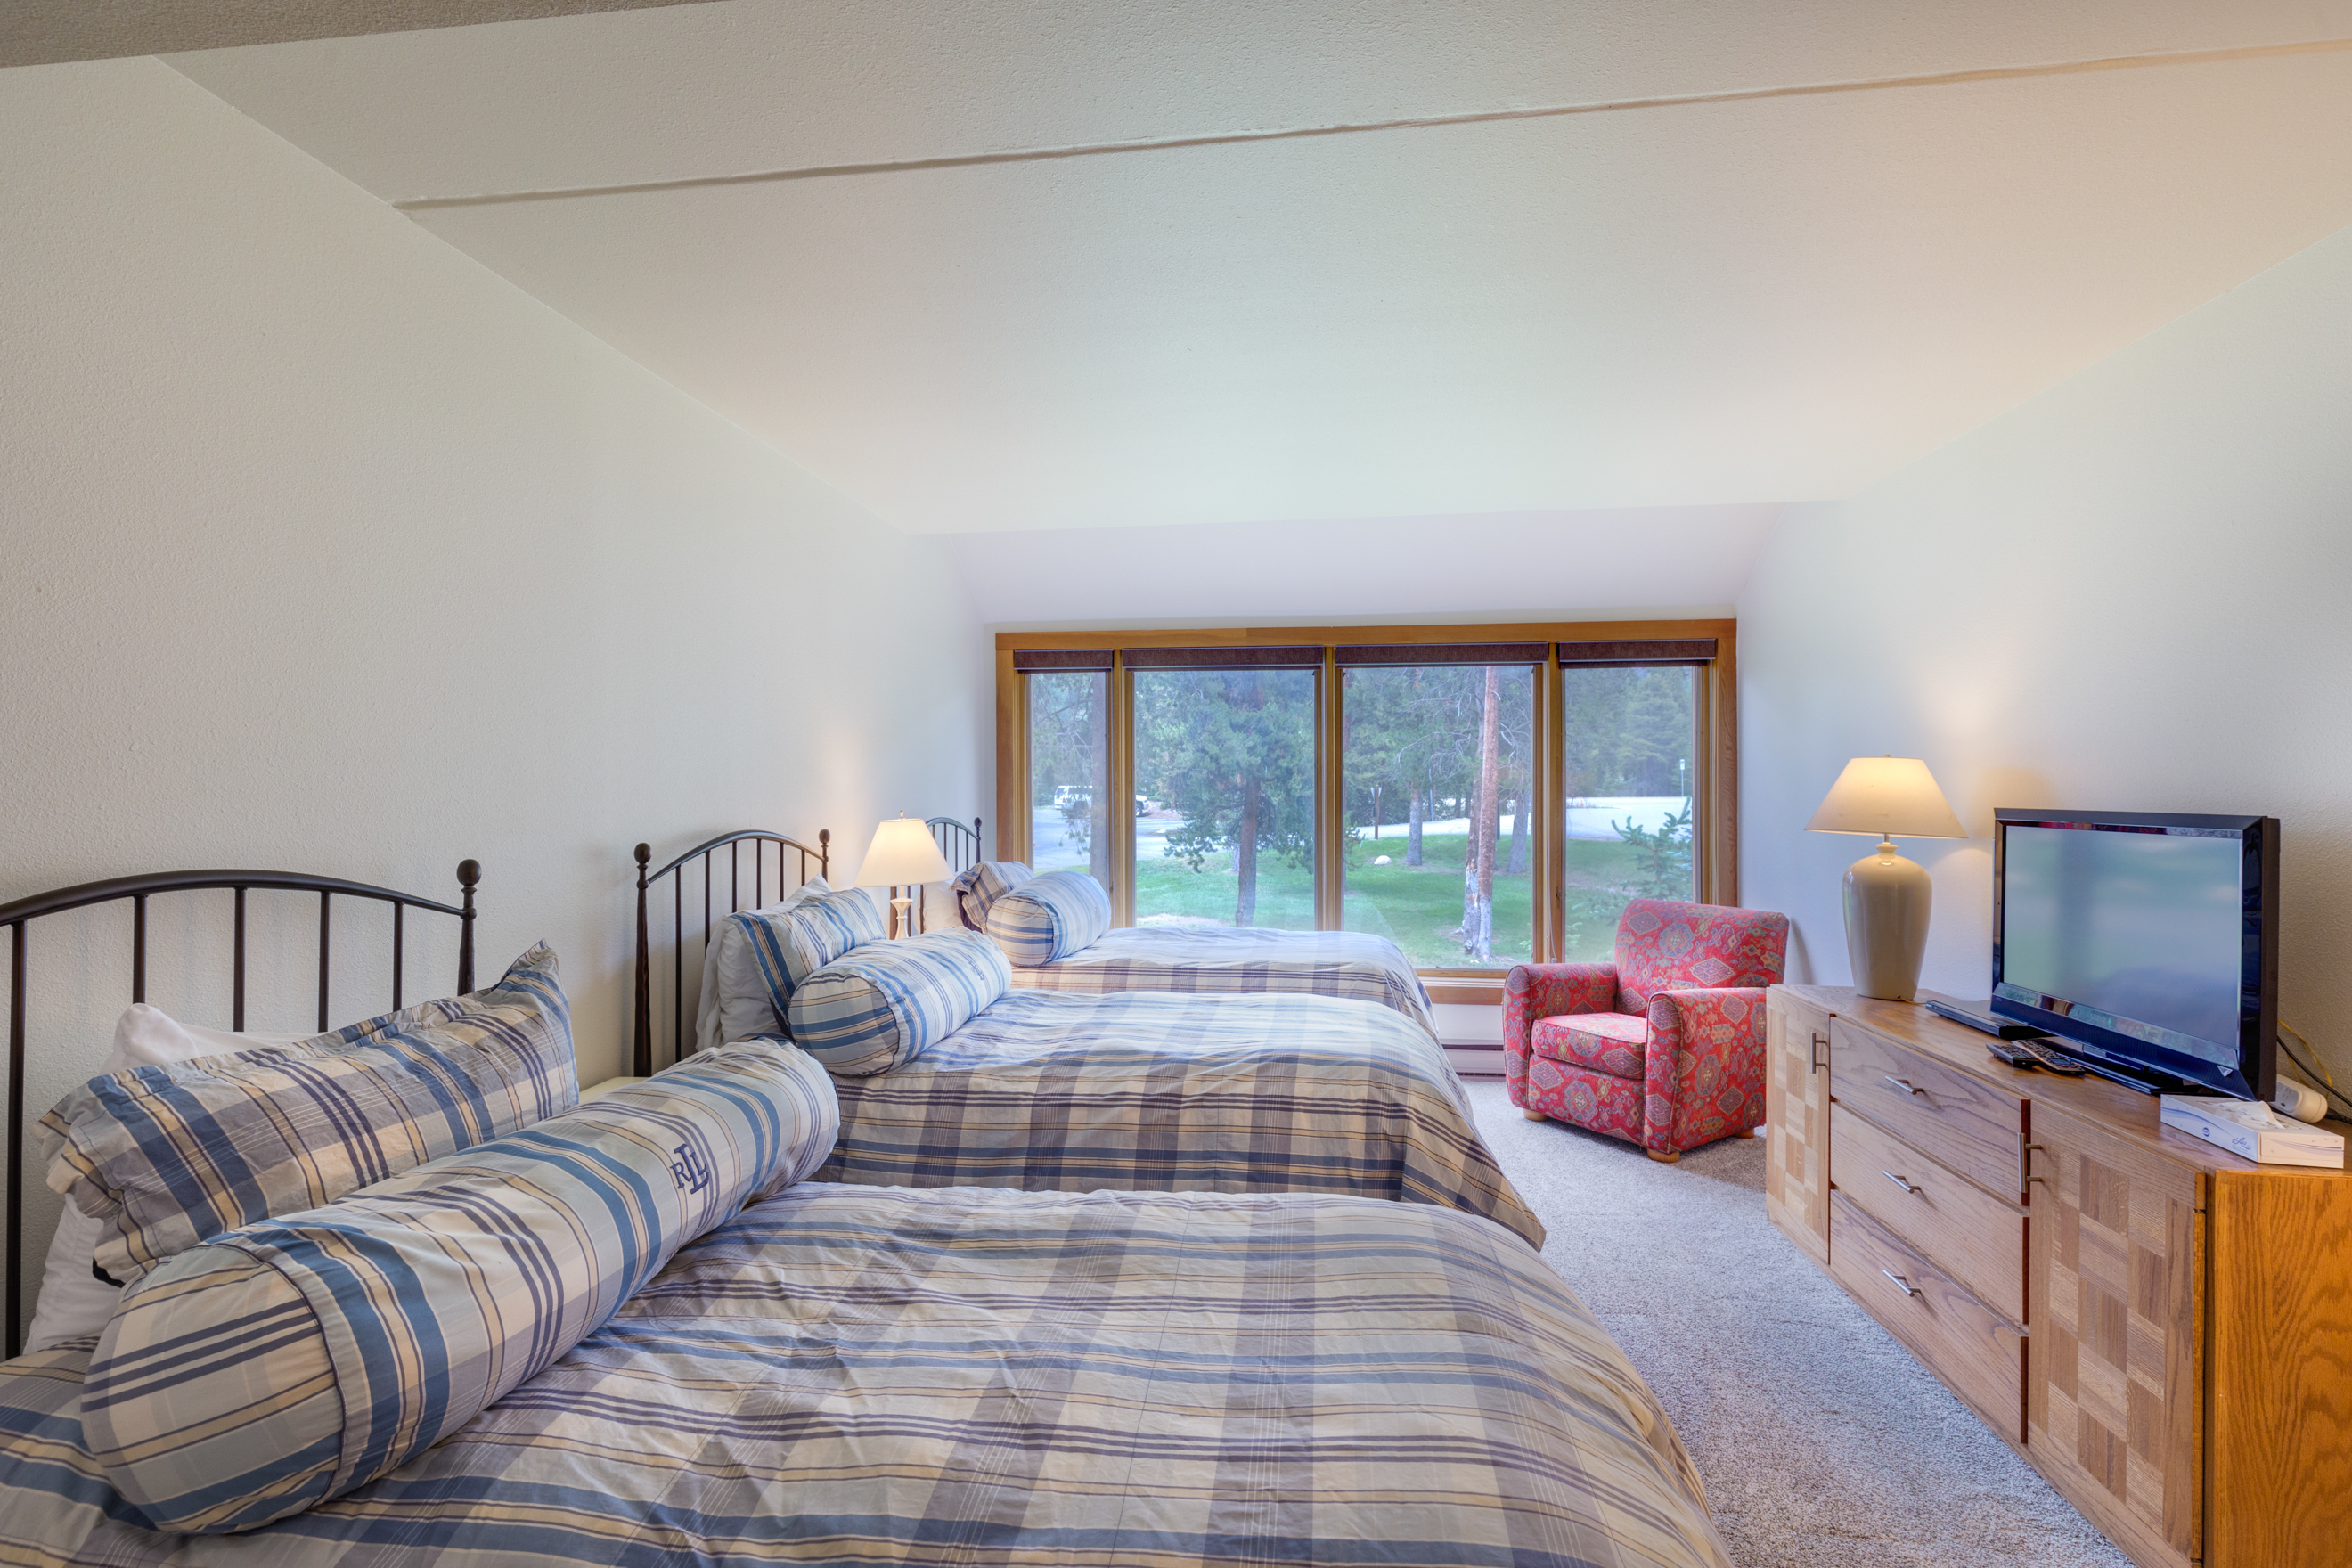 The second guest bedroom features three twin-sized beds and a flat screen TV with DVD player.